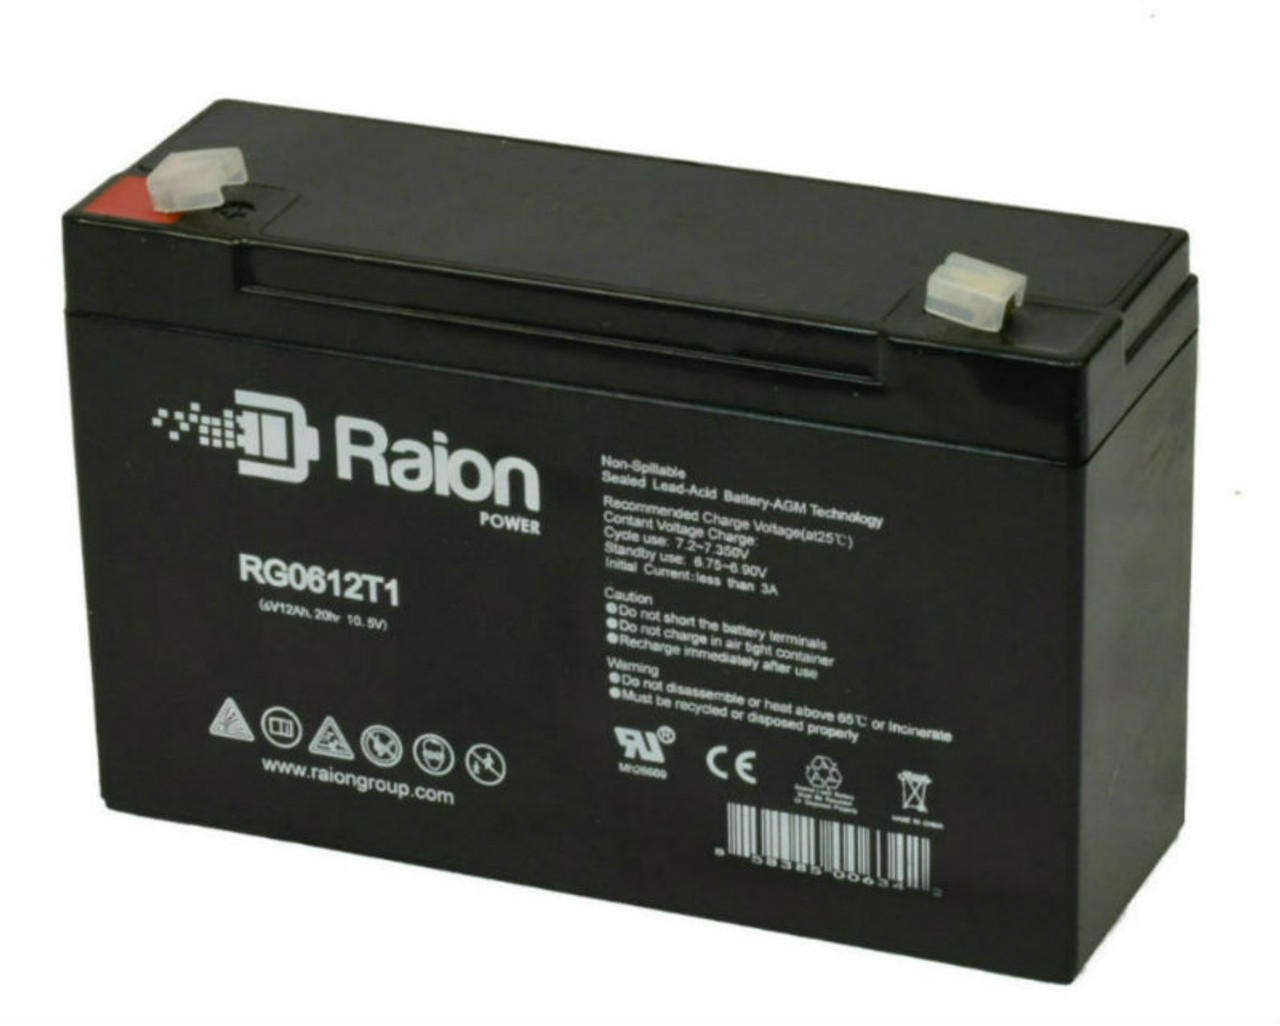 Raion Power RG06120T1 Replacement Battery Pack for Sonnenschein MG2MF emergency light